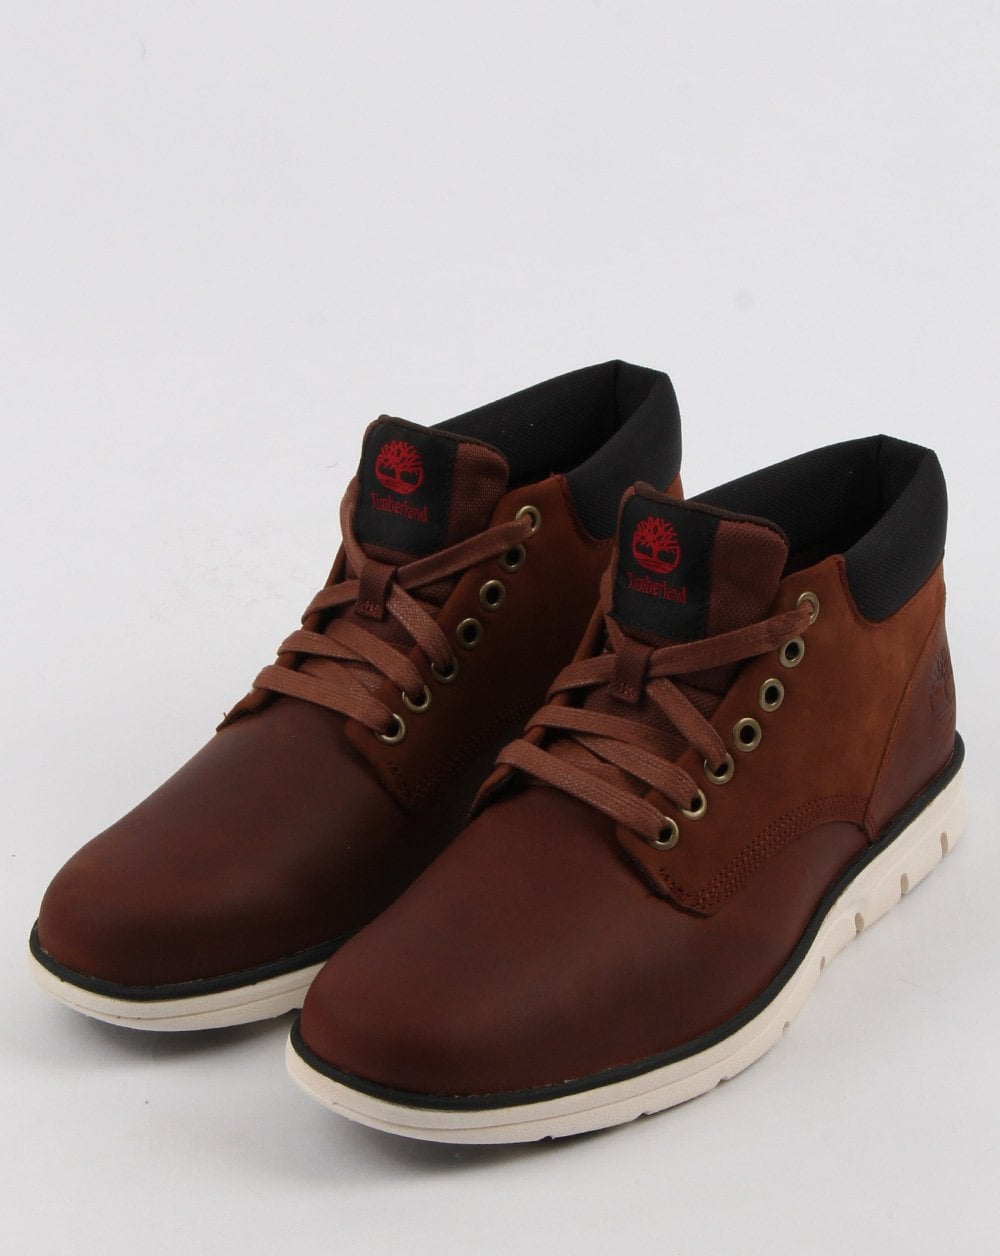 8f0c5c26cda Timberland Bradstreet Chukka Leather Shoes Red Brown